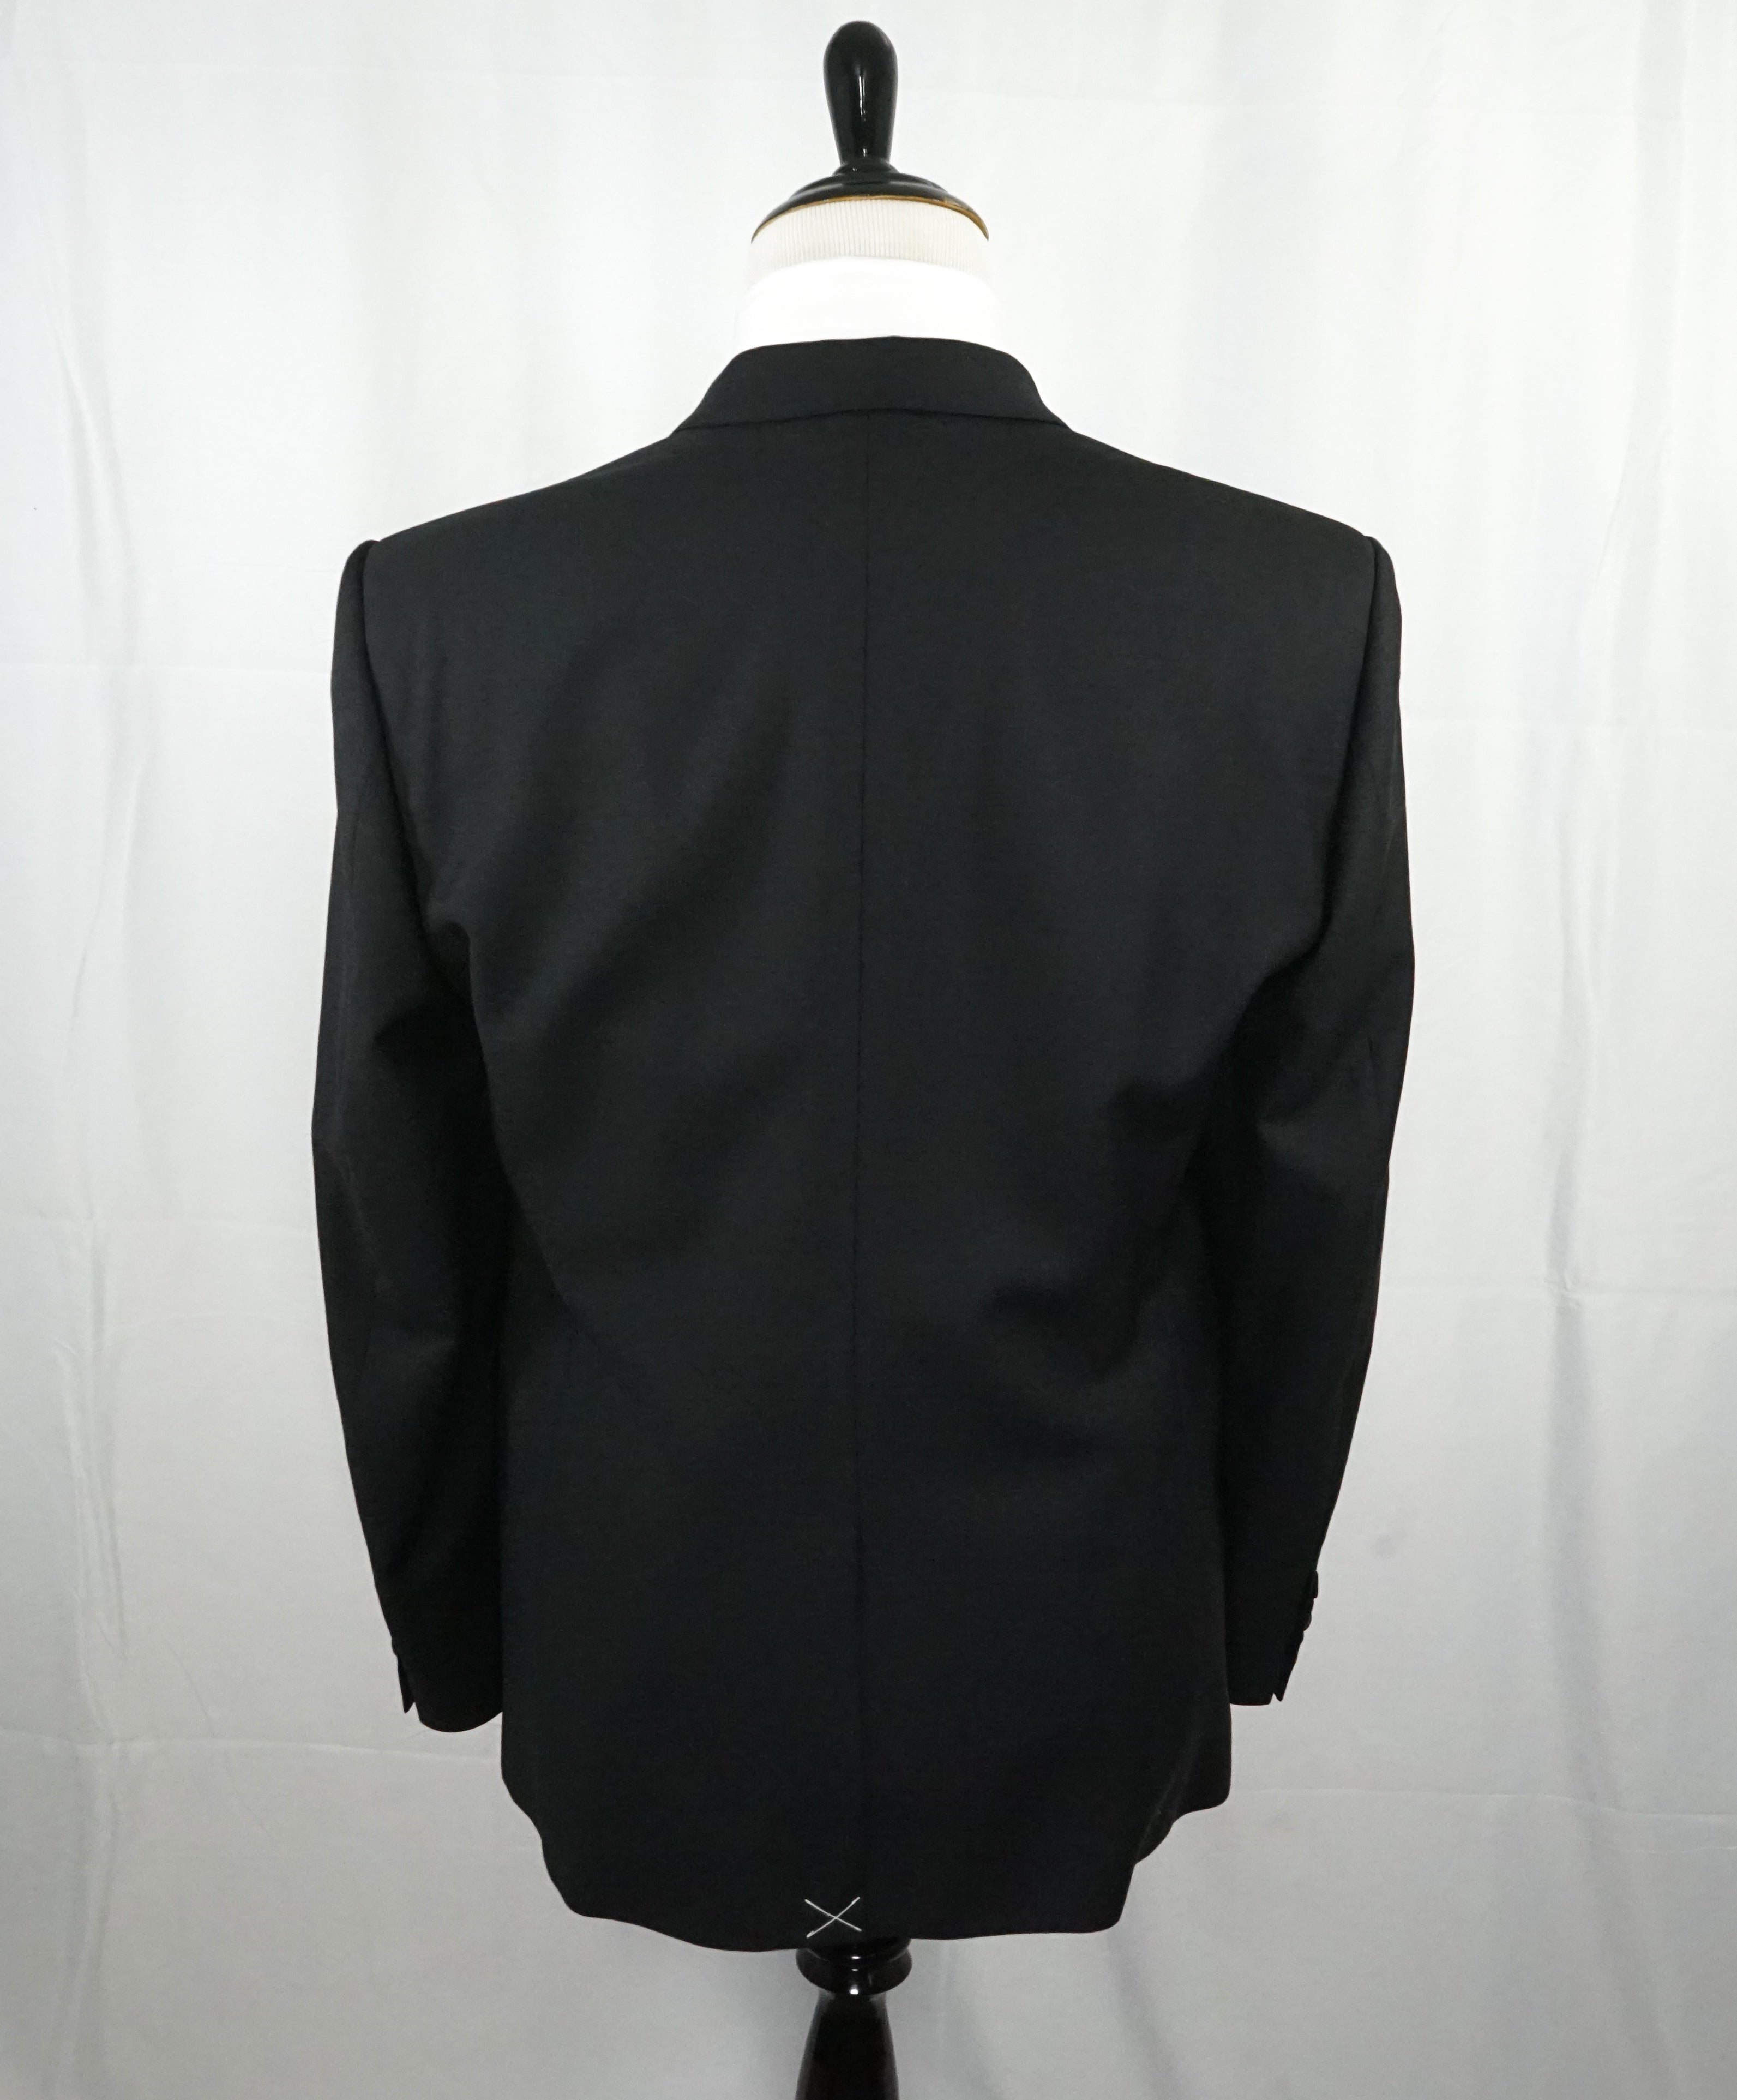 BURBERRY LONDON - Made In Italy Wool & Mohair Tuxedo Suit - 44R